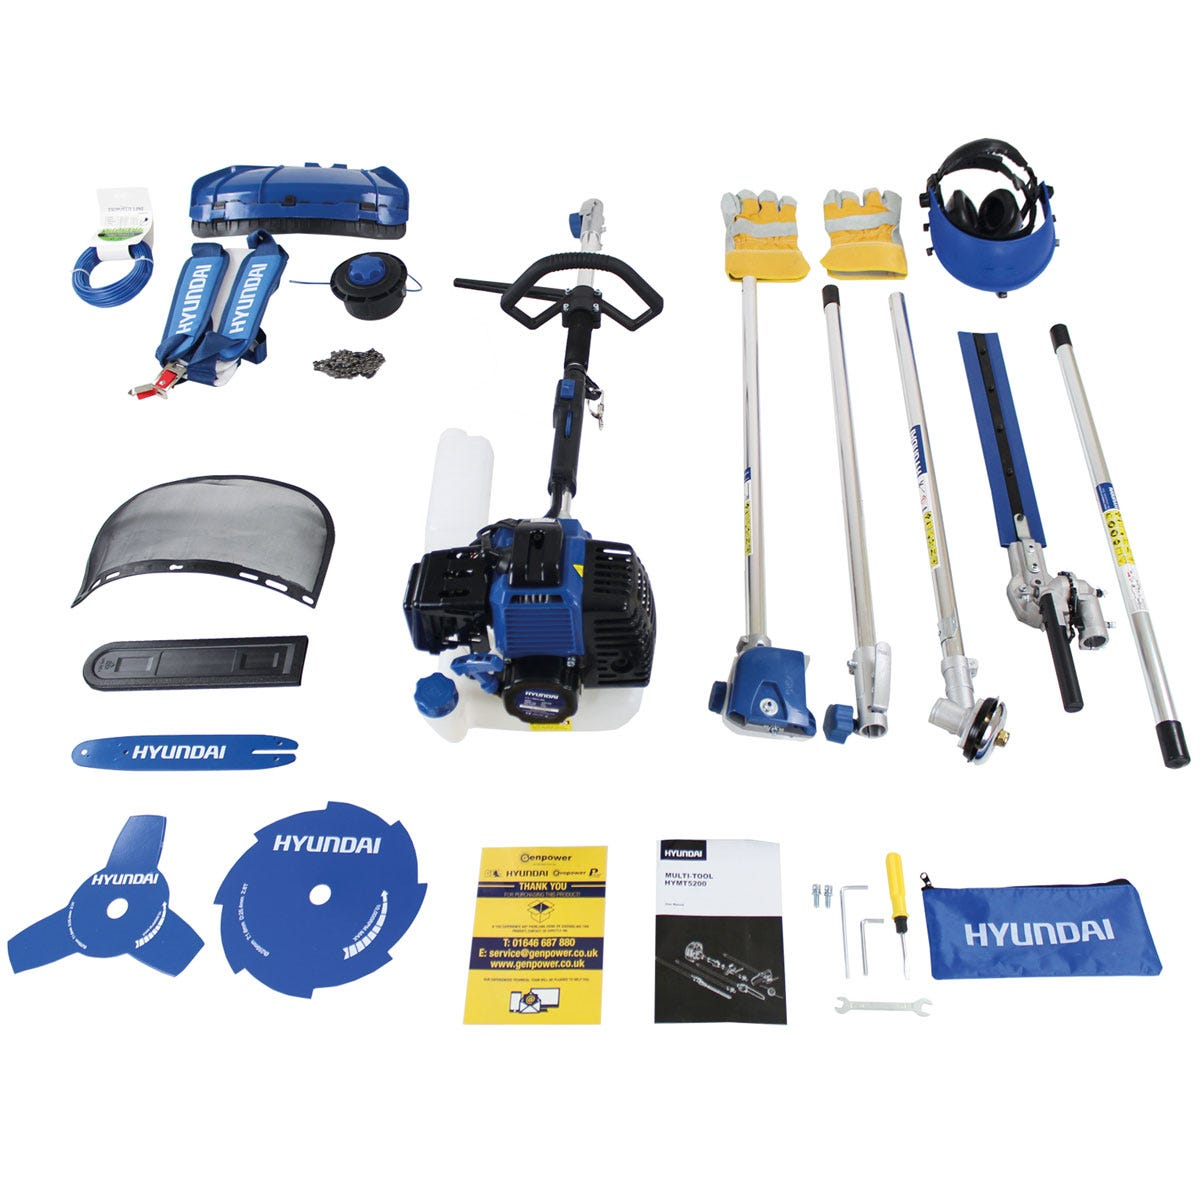 Hyundai HYMT5200 52cc Petrol Garden Multi Function Tool (Hedge Chainsaw Brushcutter Grass Trimmer and Extension Shaft)